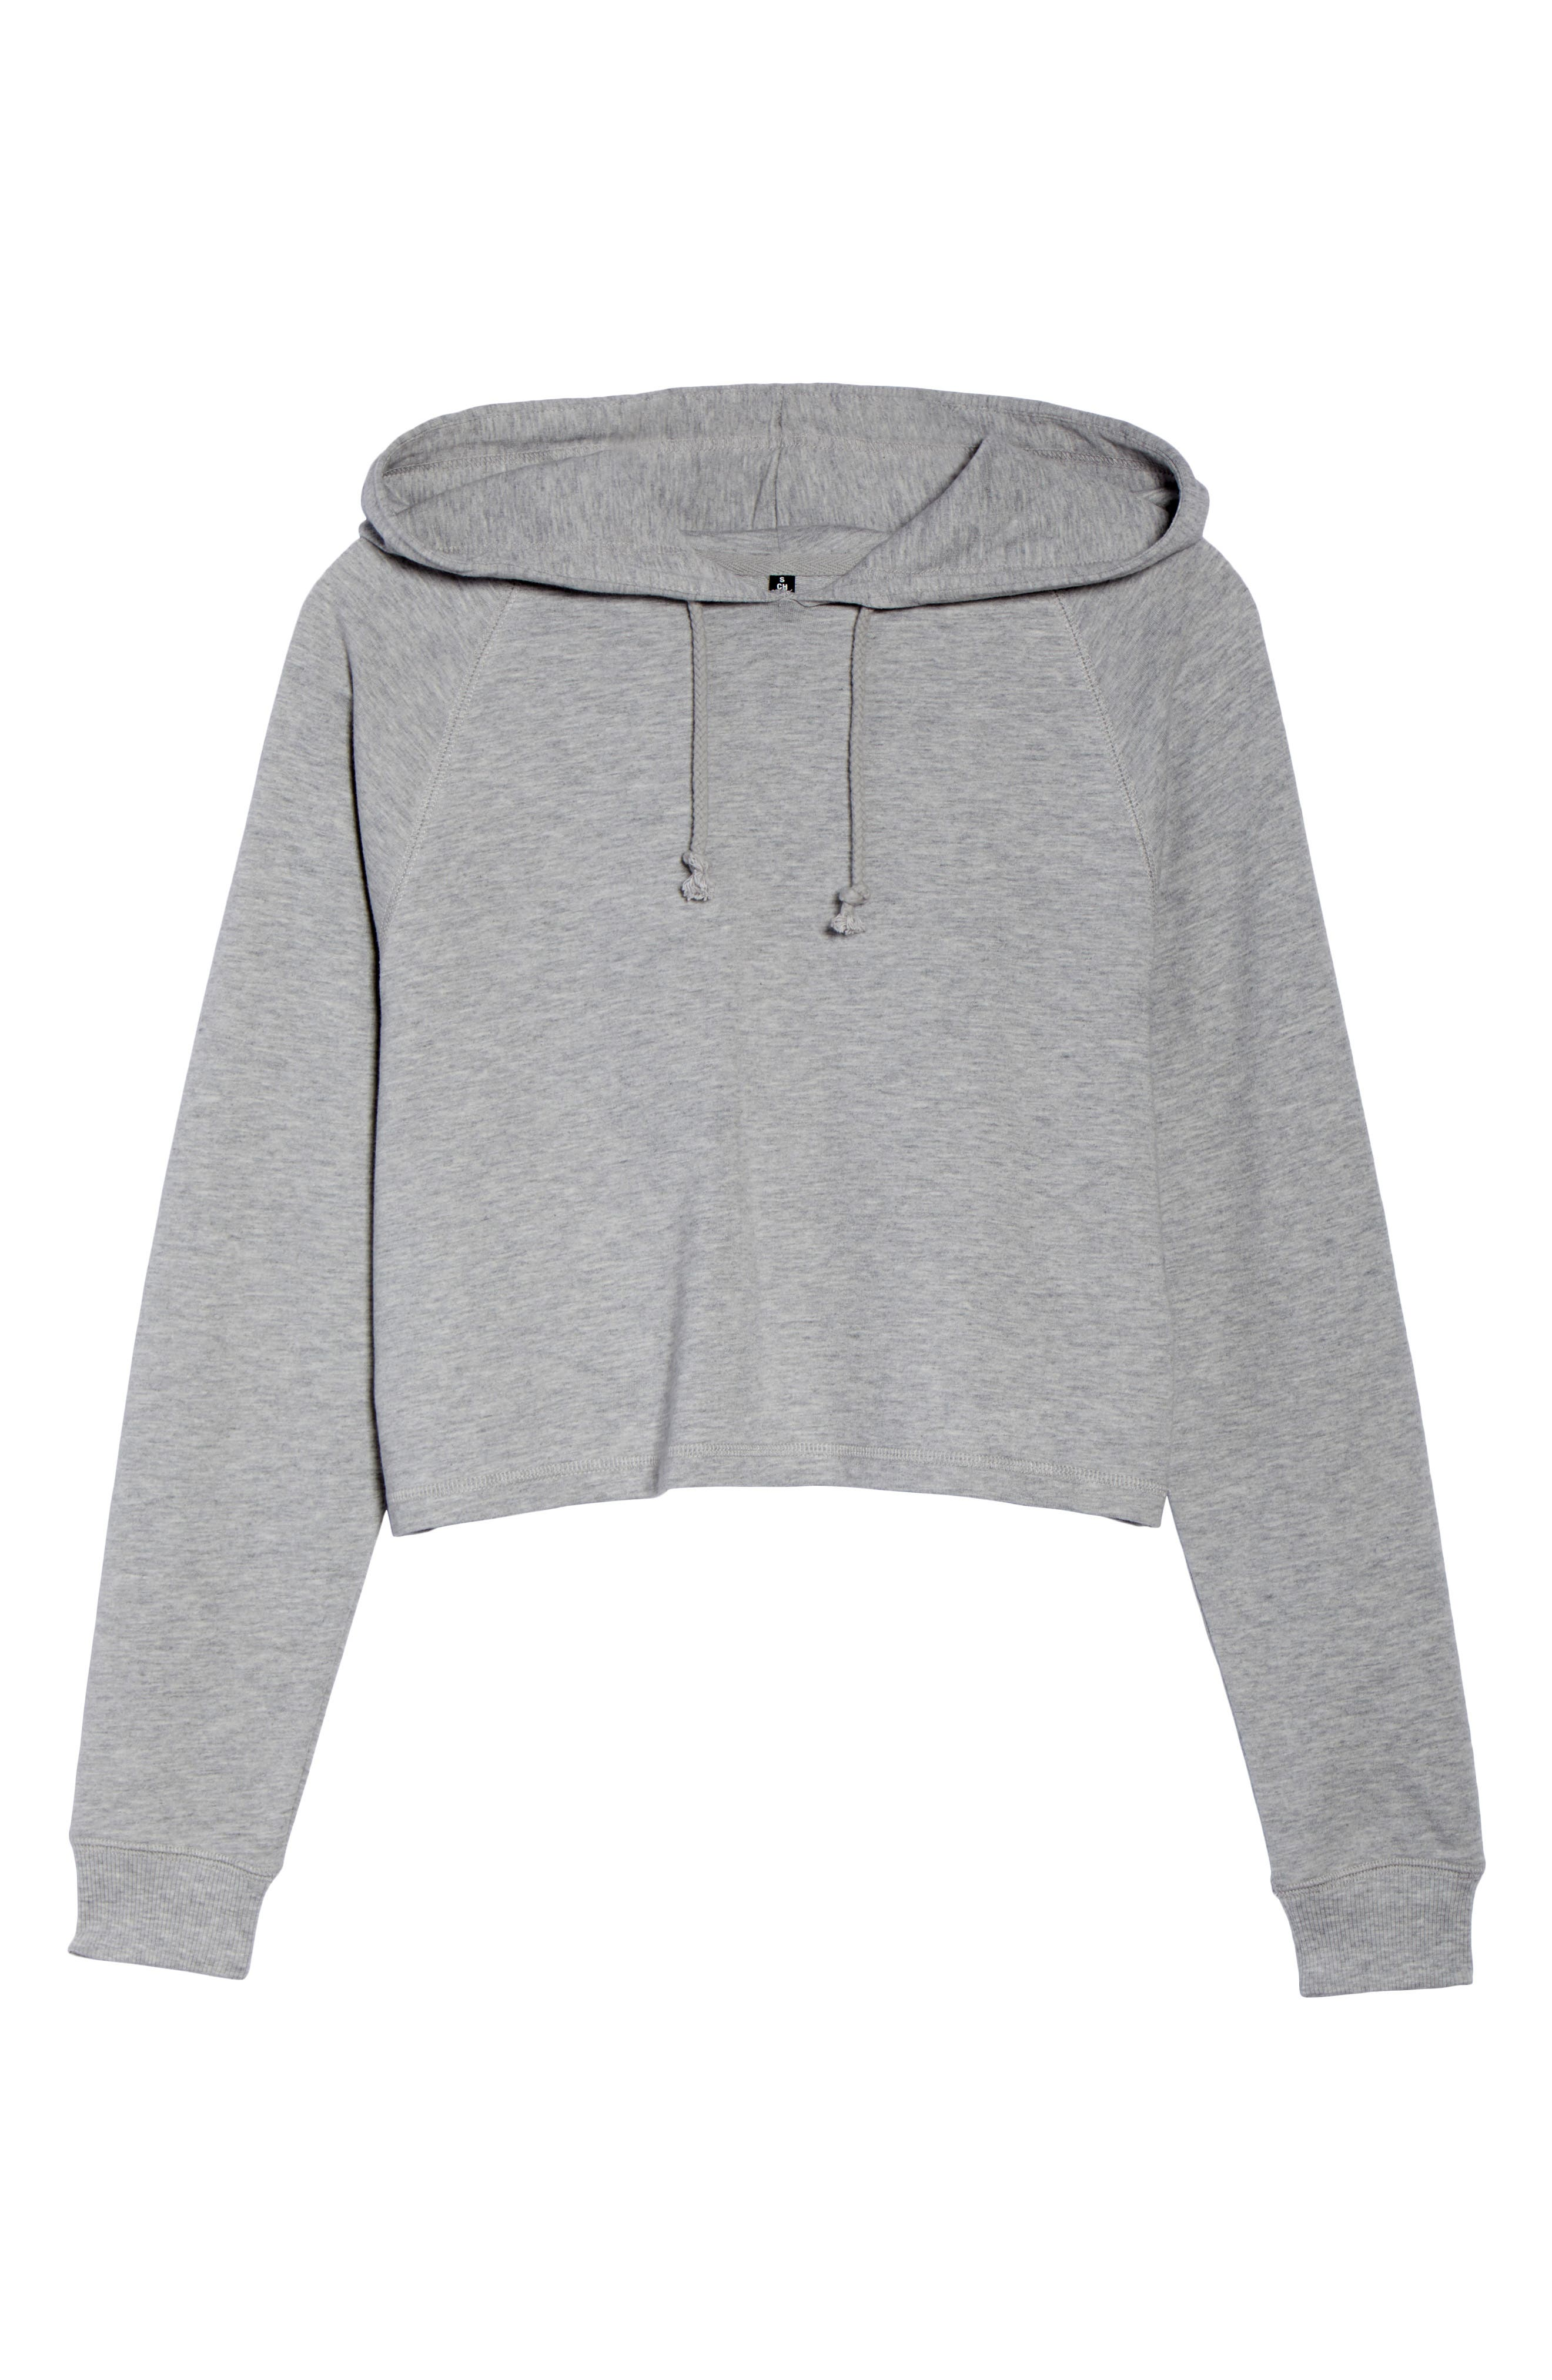 French Terry Crop Hoodie,                             Alternate thumbnail 12, color,